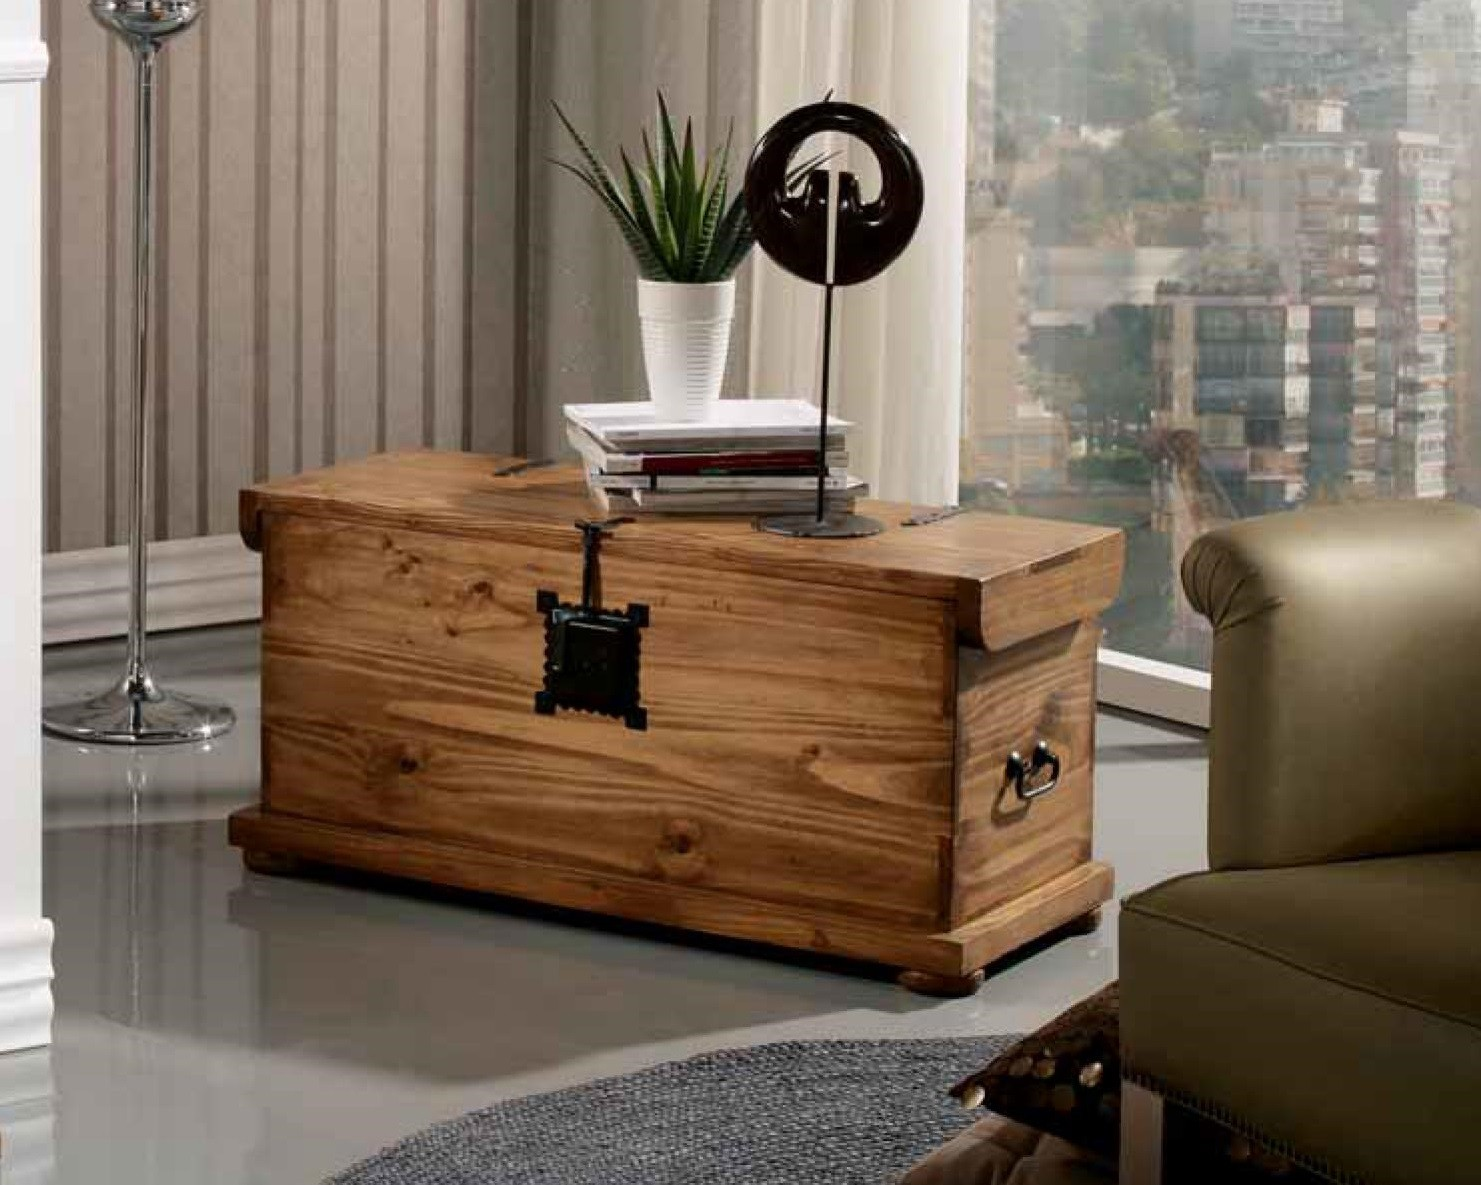 Muebles rusticos modernos madera trendy with muebles for Moderno mexicano muebles